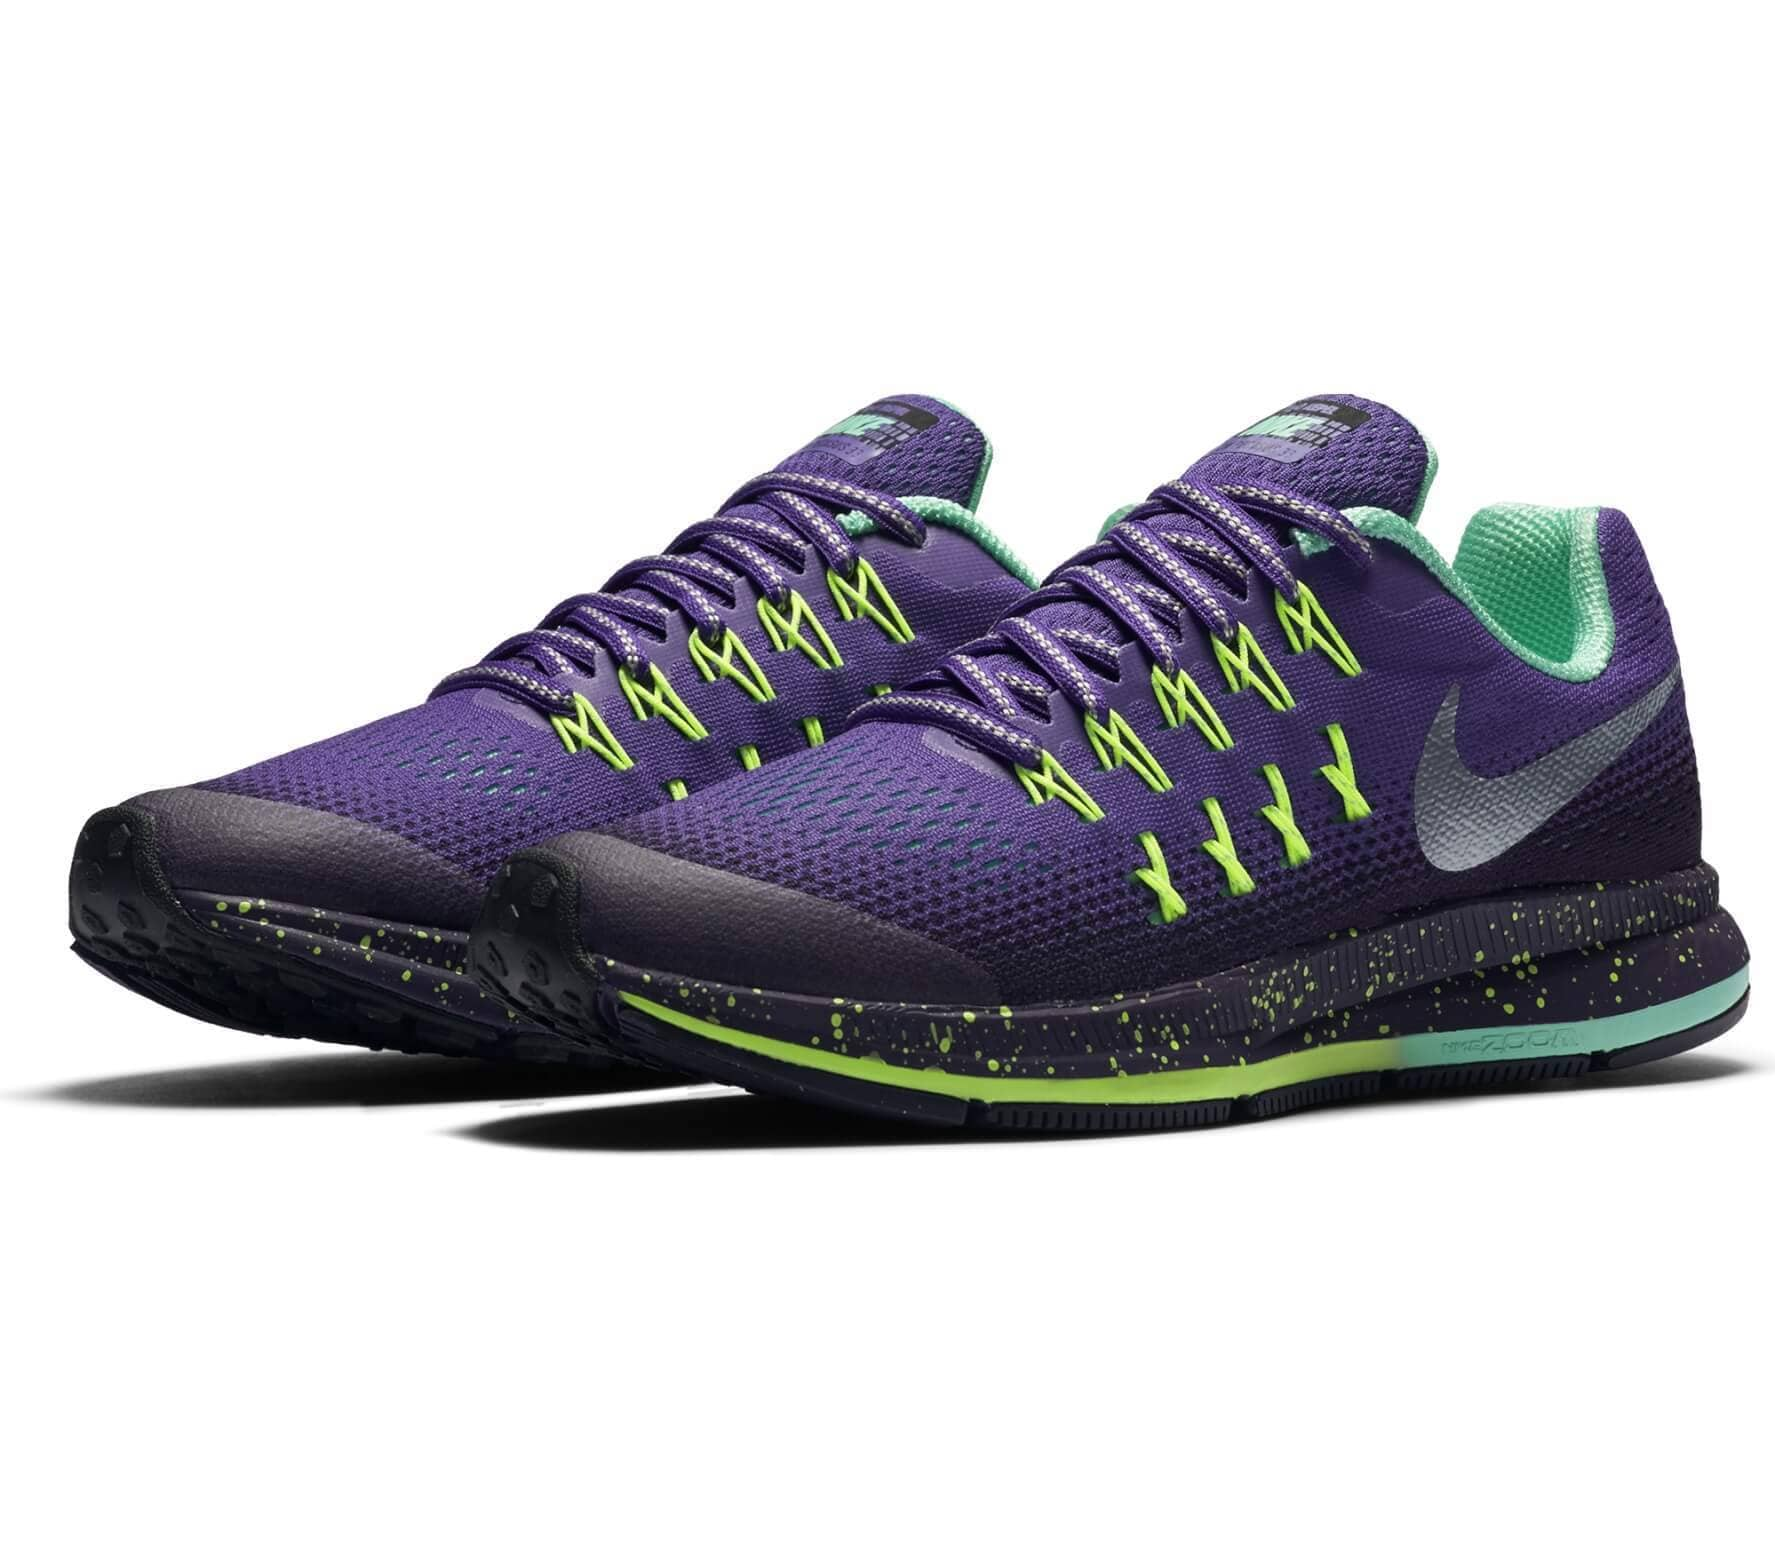 What Kind Of Shoe Is The Nike Pegasus